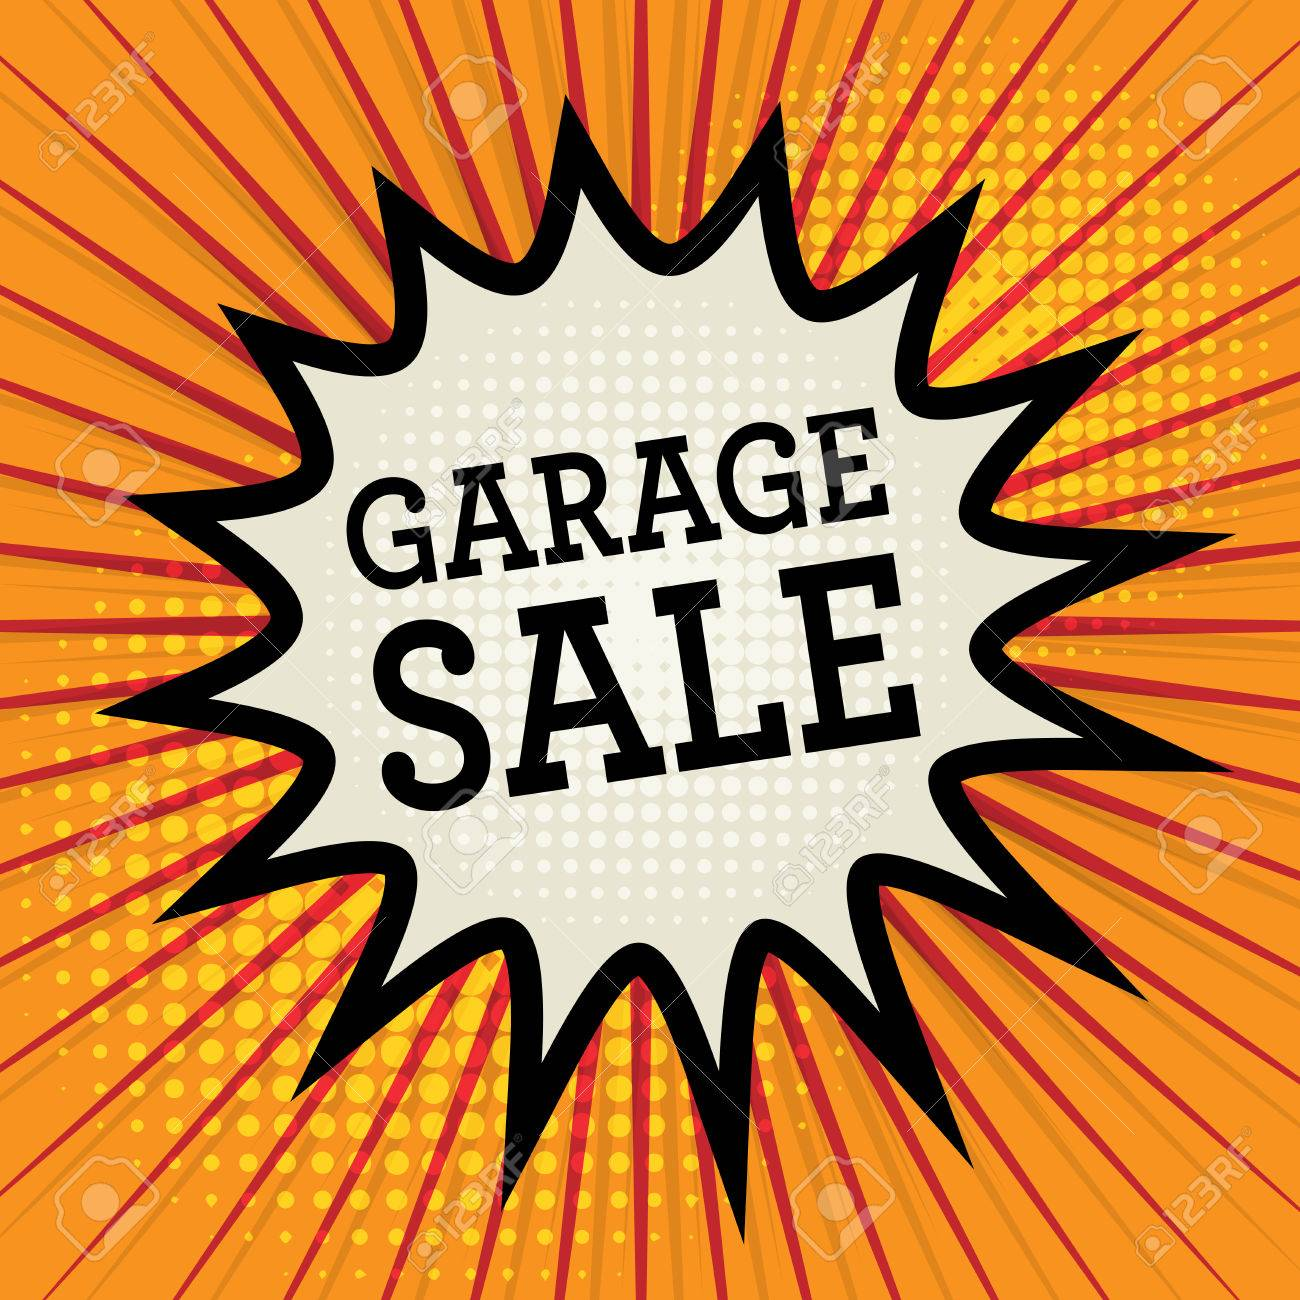 stickers of stock photo image close various sale garage advertising view generic denomination